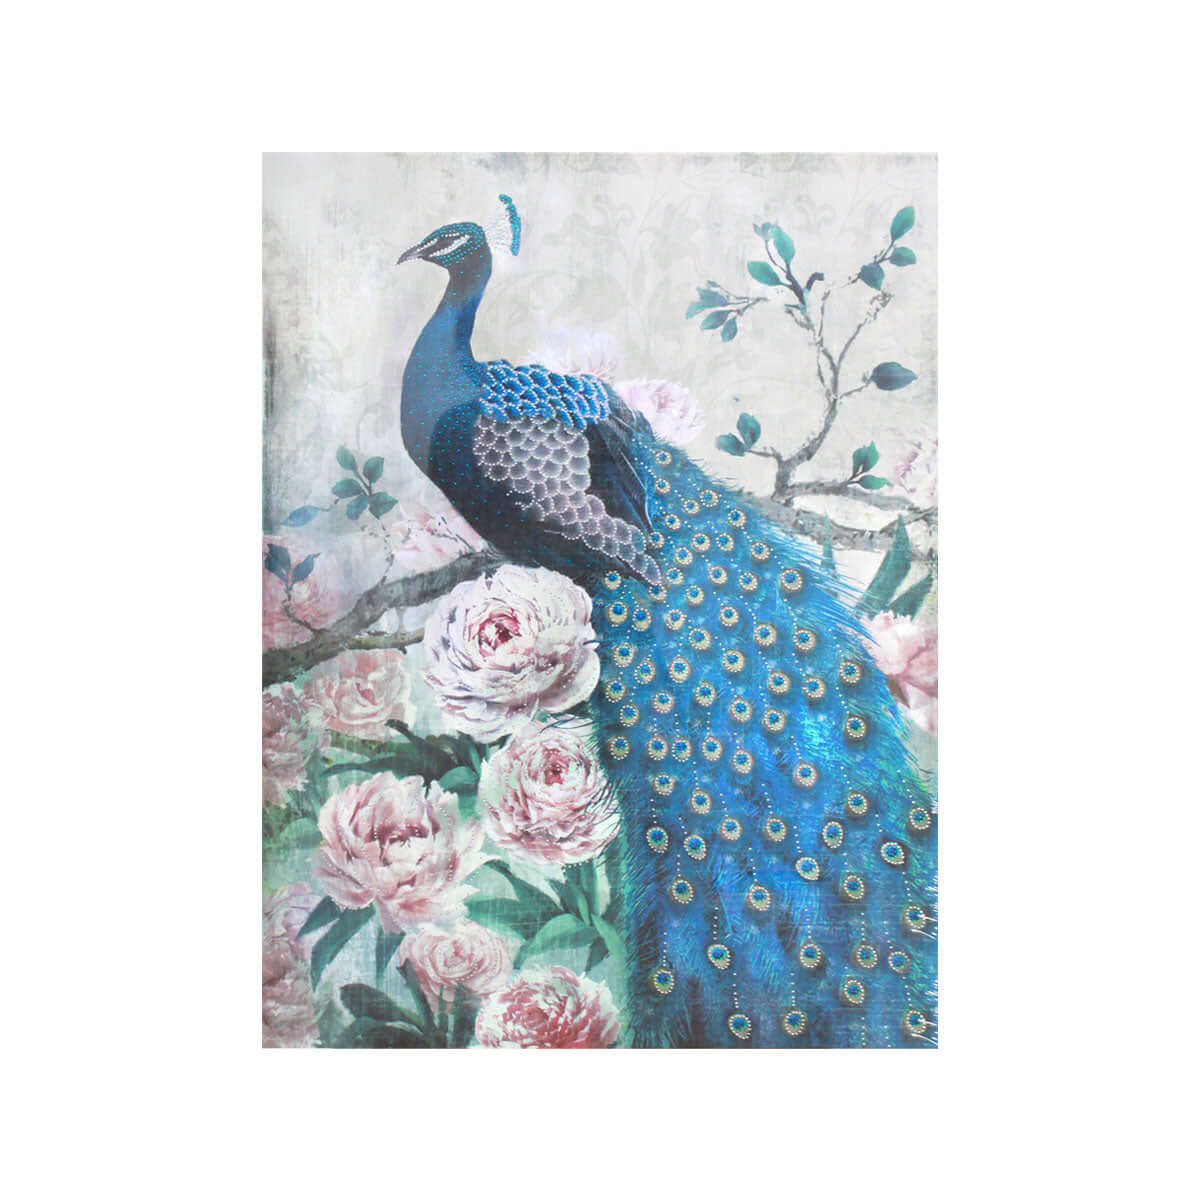 Serenity Rose Peacock Wall Art